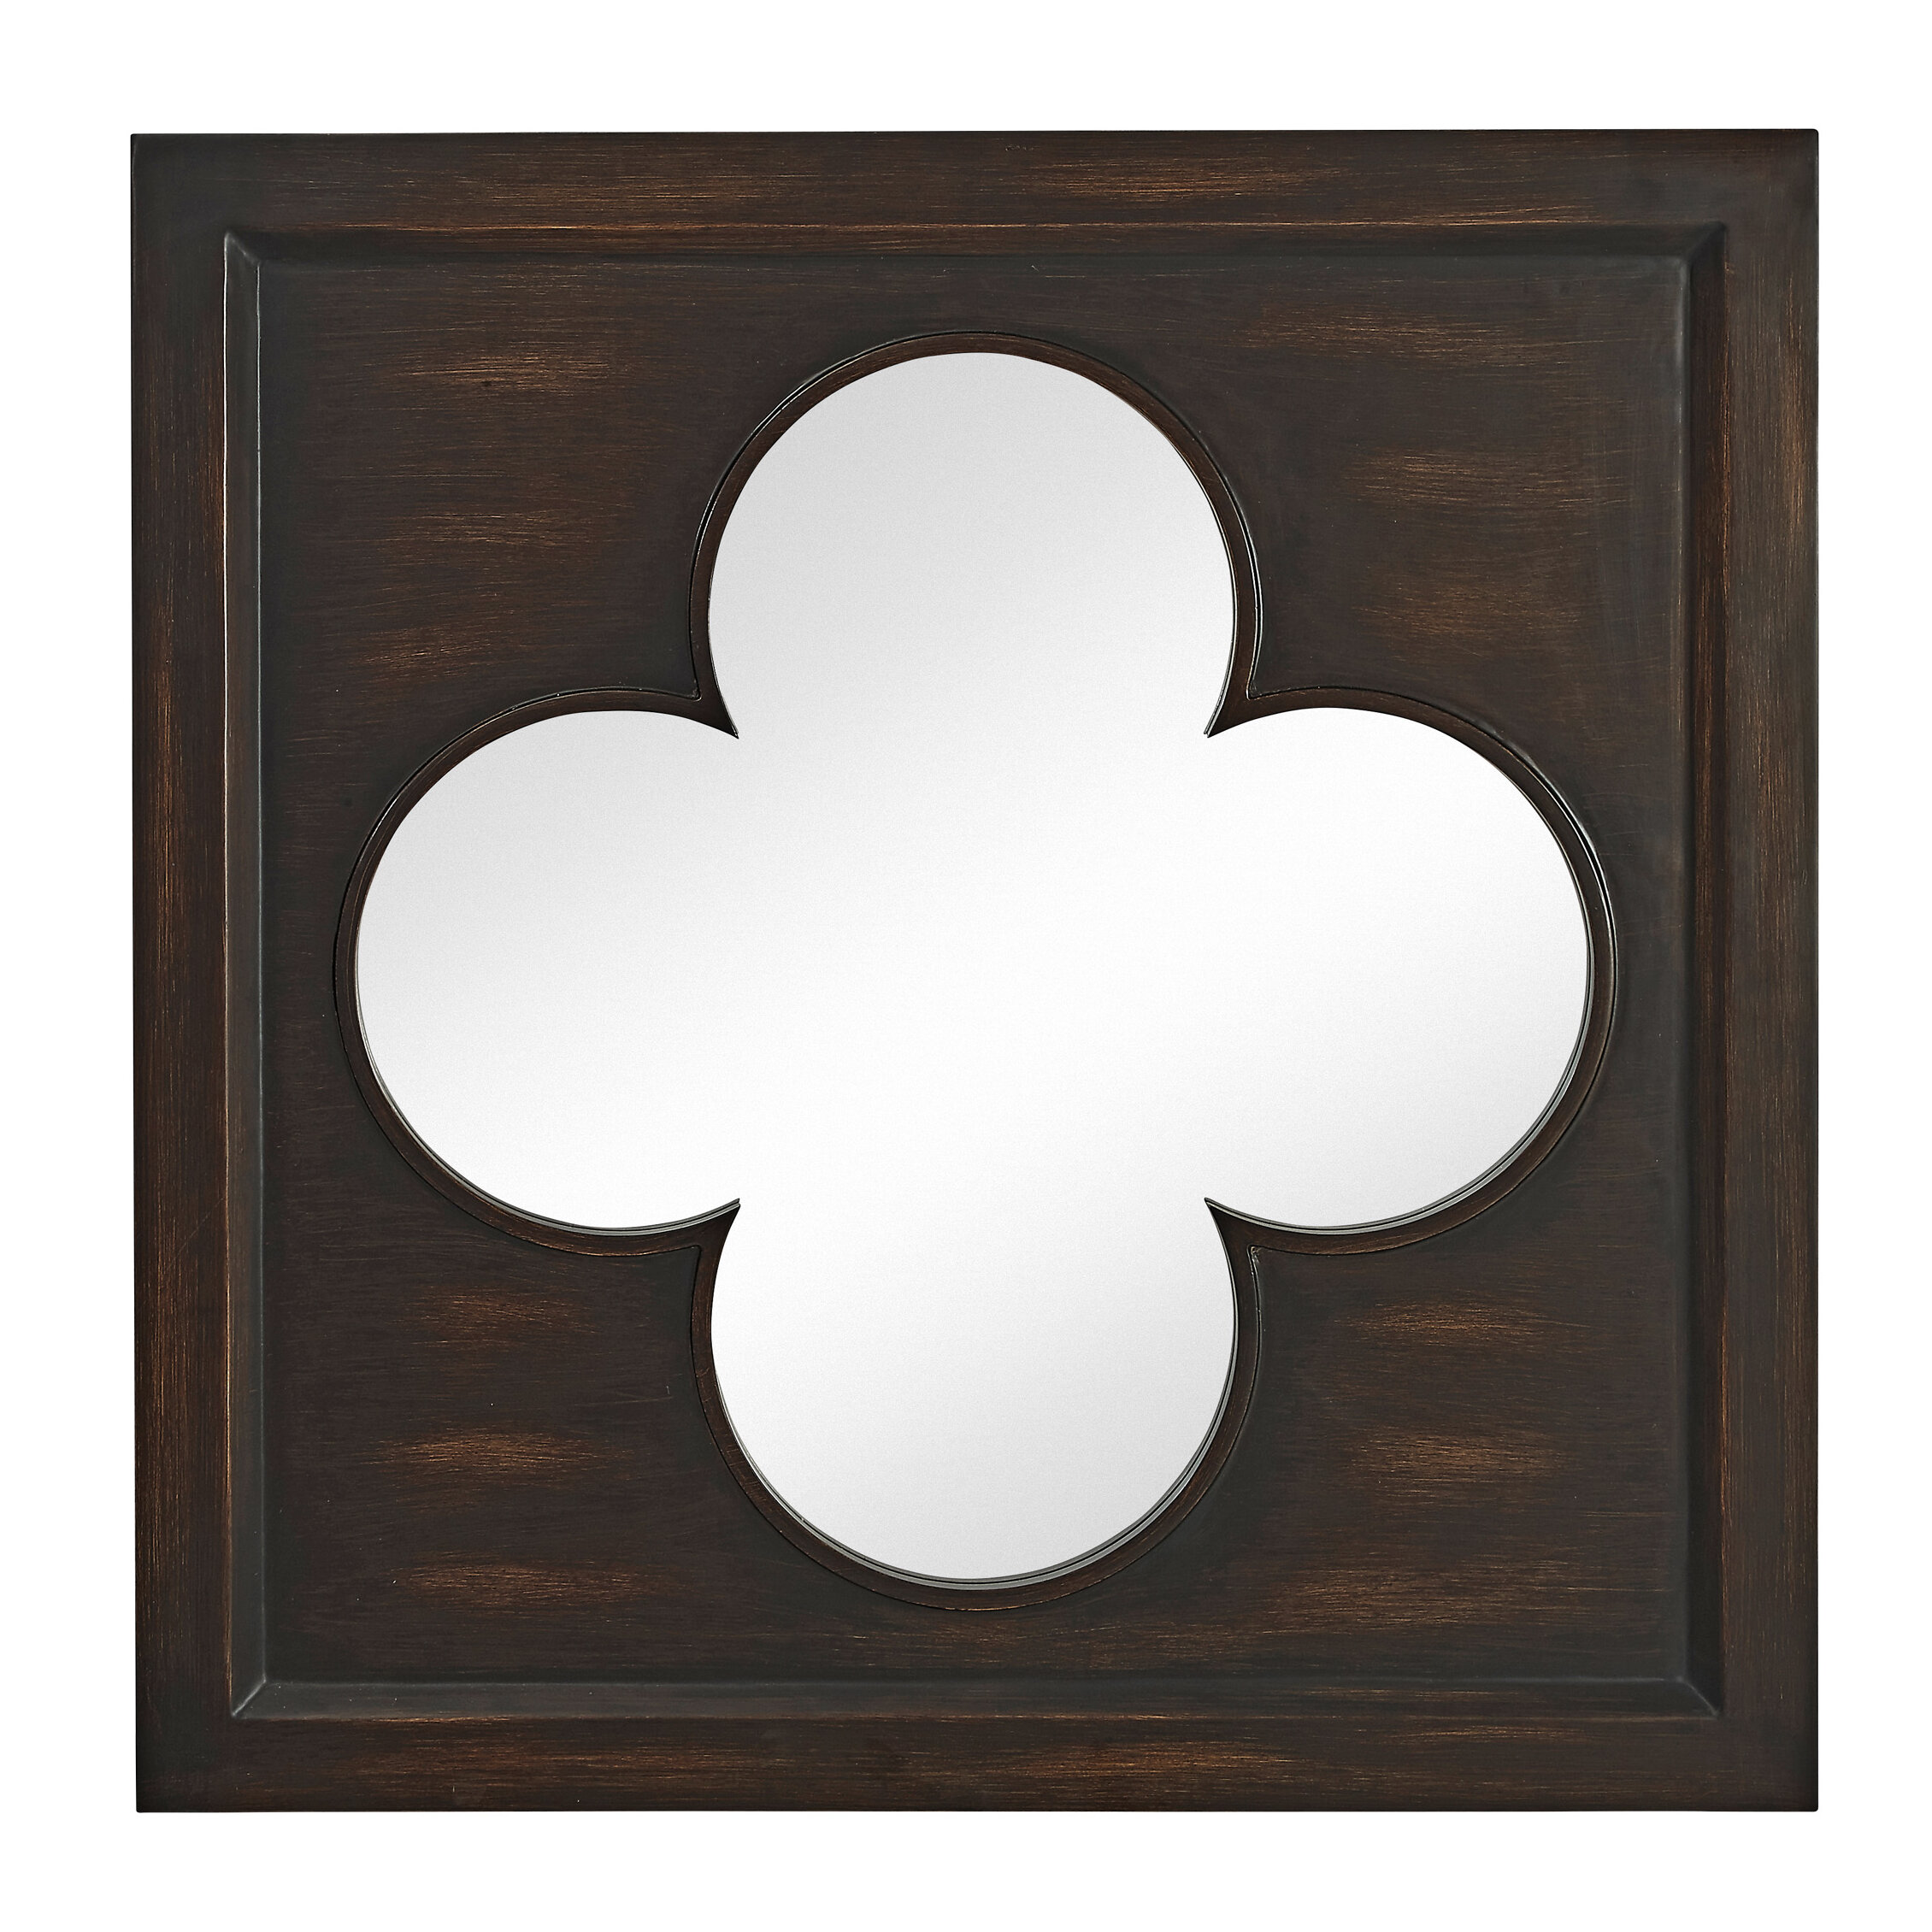 Majestic Mirror Inlay Clover Wood Wenge Square Plain Wall Mirror ...